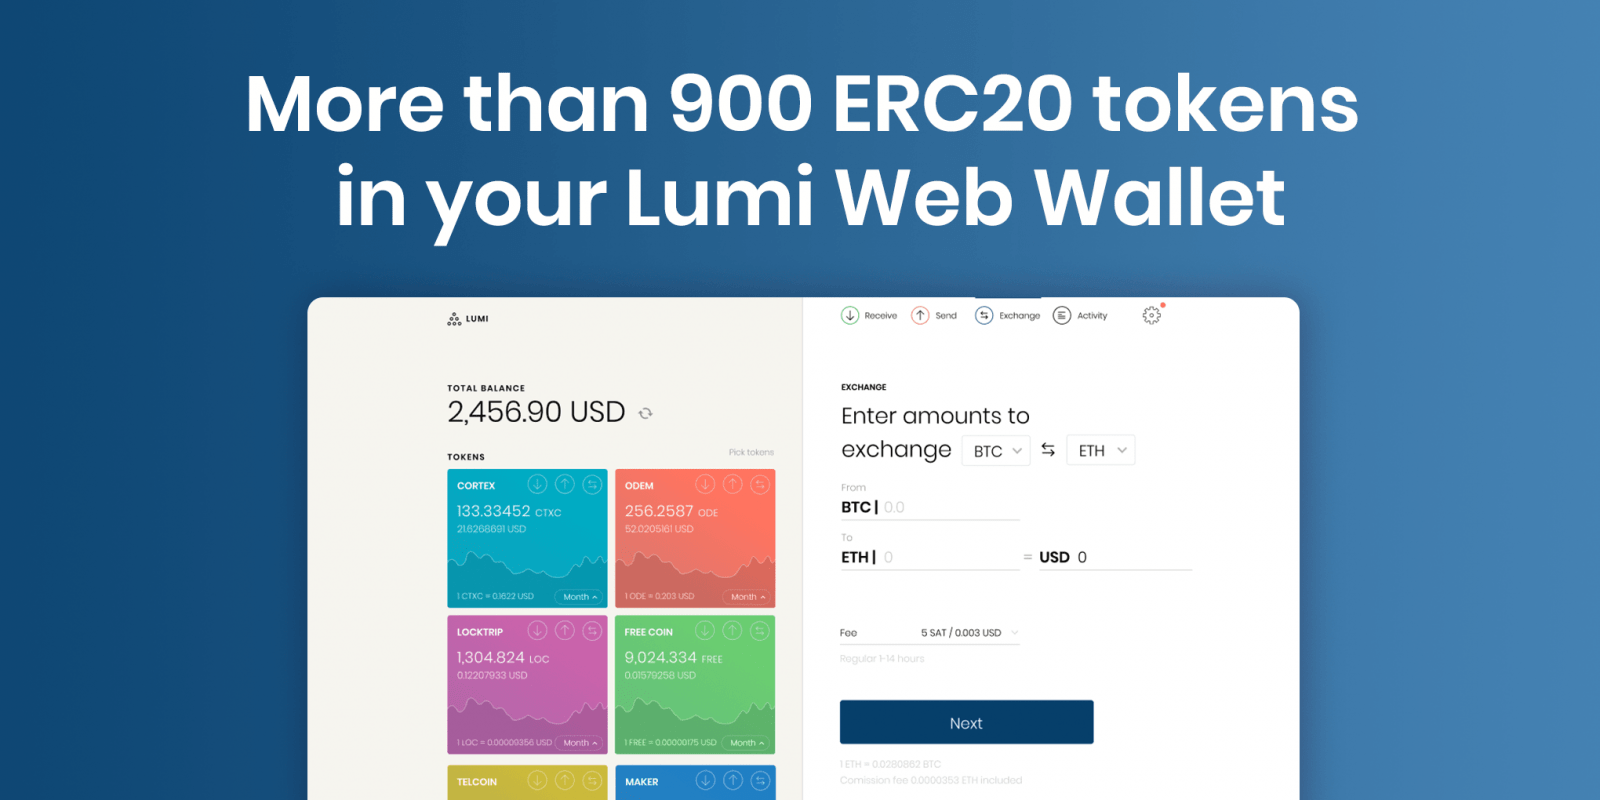 bull, sell, exchange tokens in lumi wallet